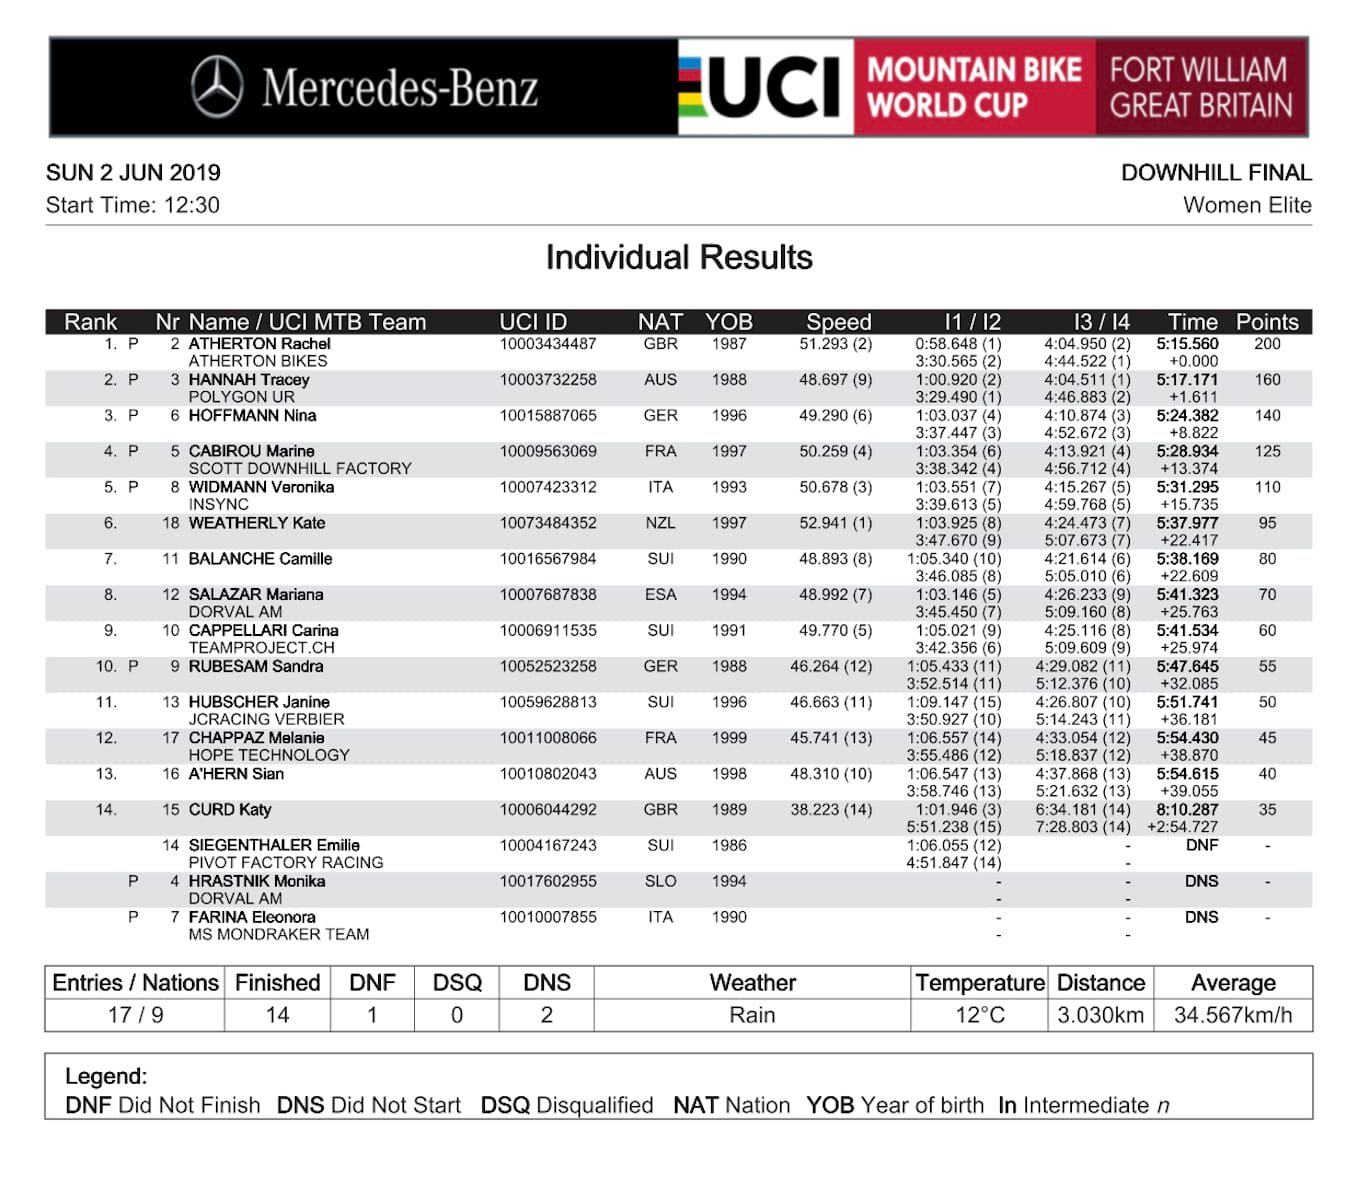 2019 fort william world cup elite women's results